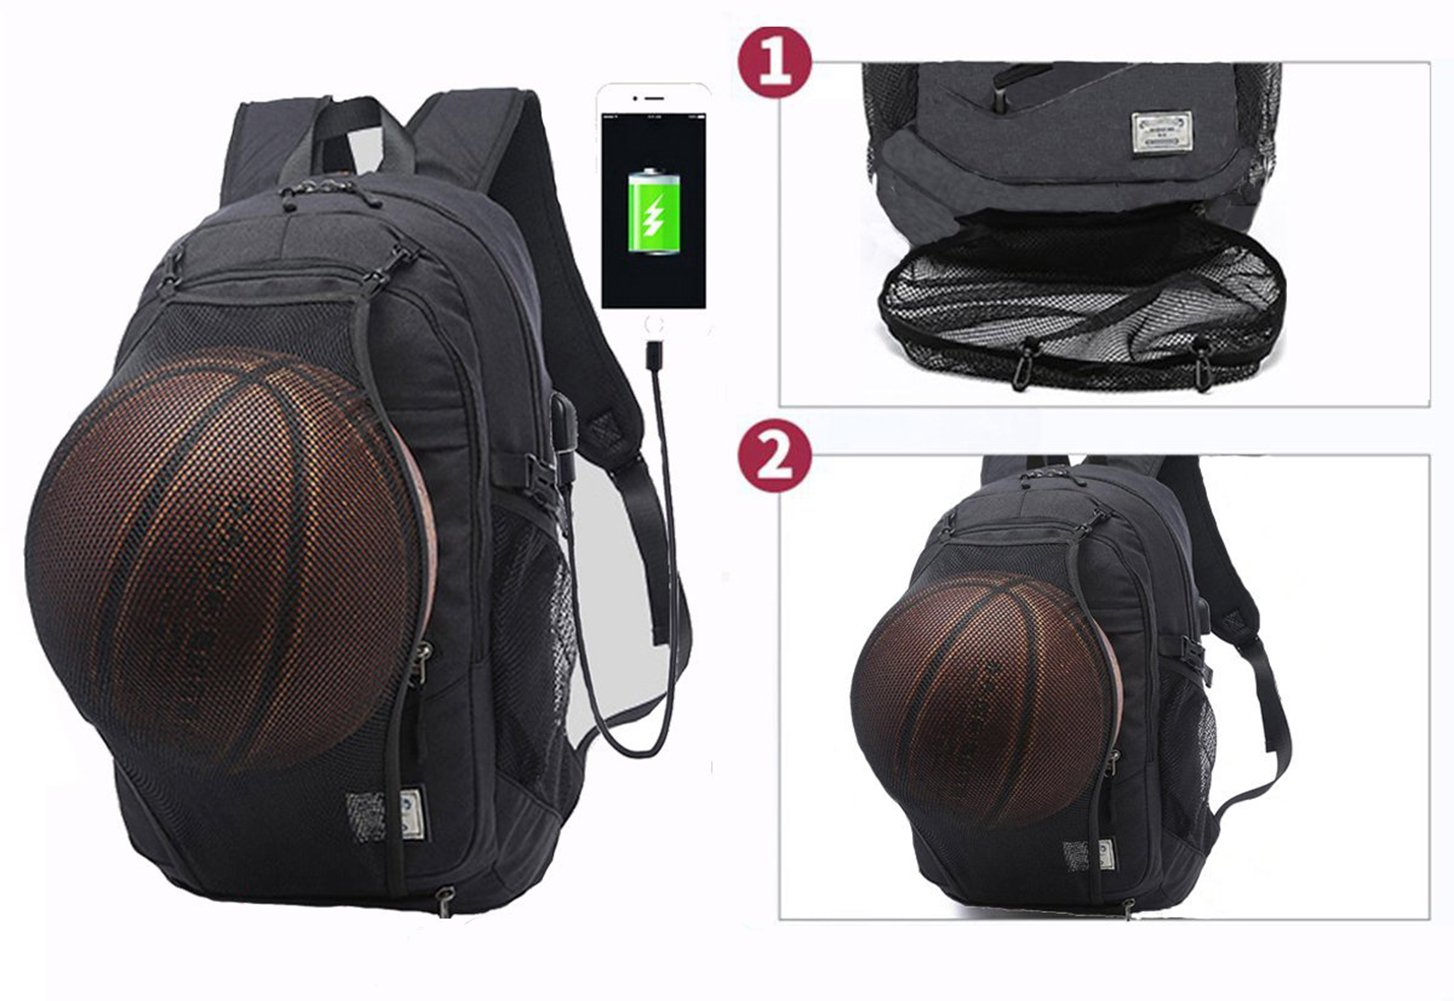 Business Laptop Backpack, Viyear Water Resisitant College Bag with Basketball Carrying Net Slim Travel Daypack Fit 15.6 Inch Computer with USB Charging Port for Women and Men Black